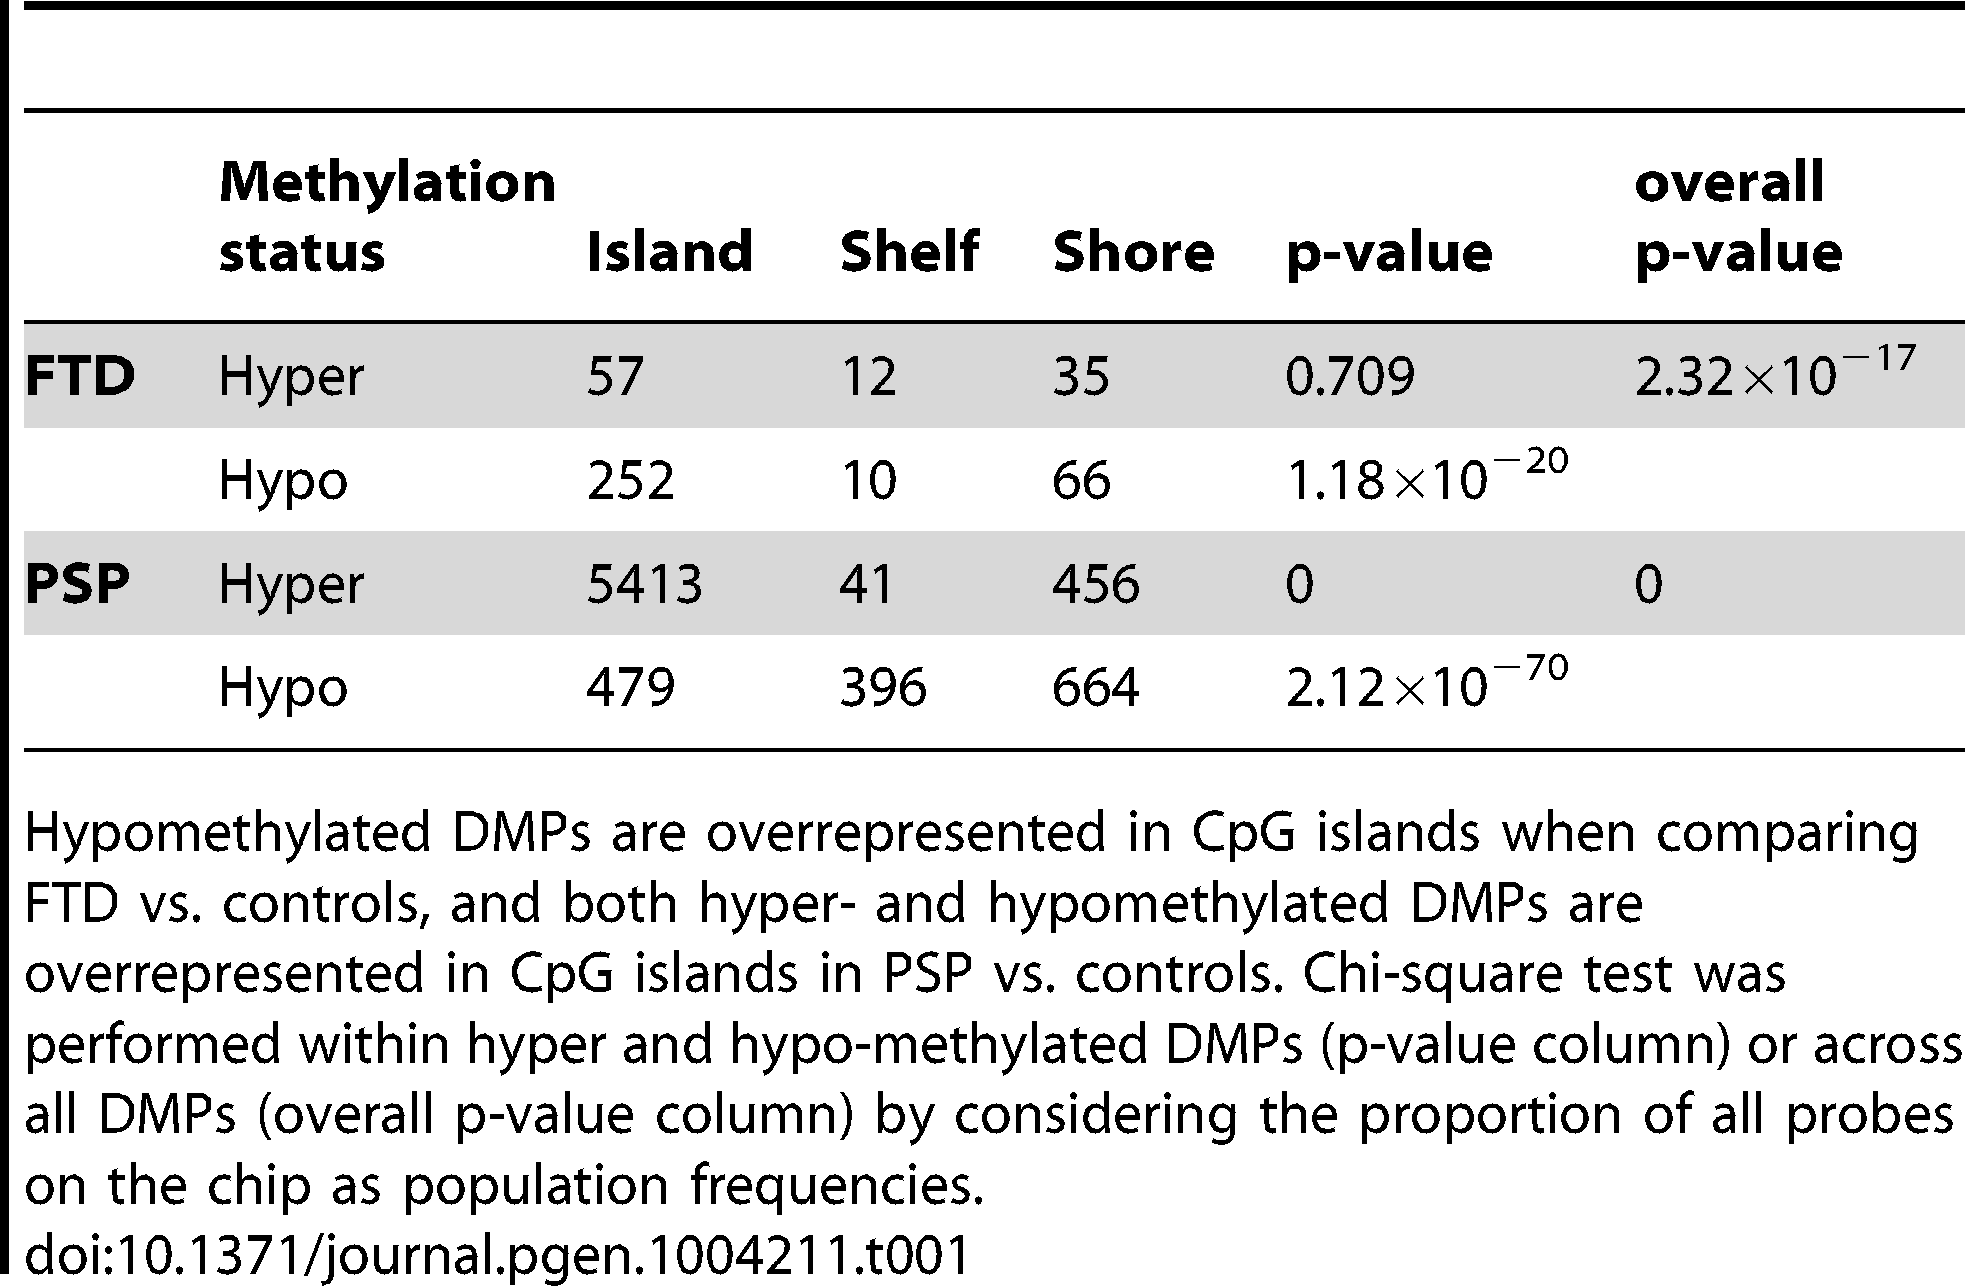 DMPs identified in disease vs. controls classified by probe type (Island, Shelf, and Shore).